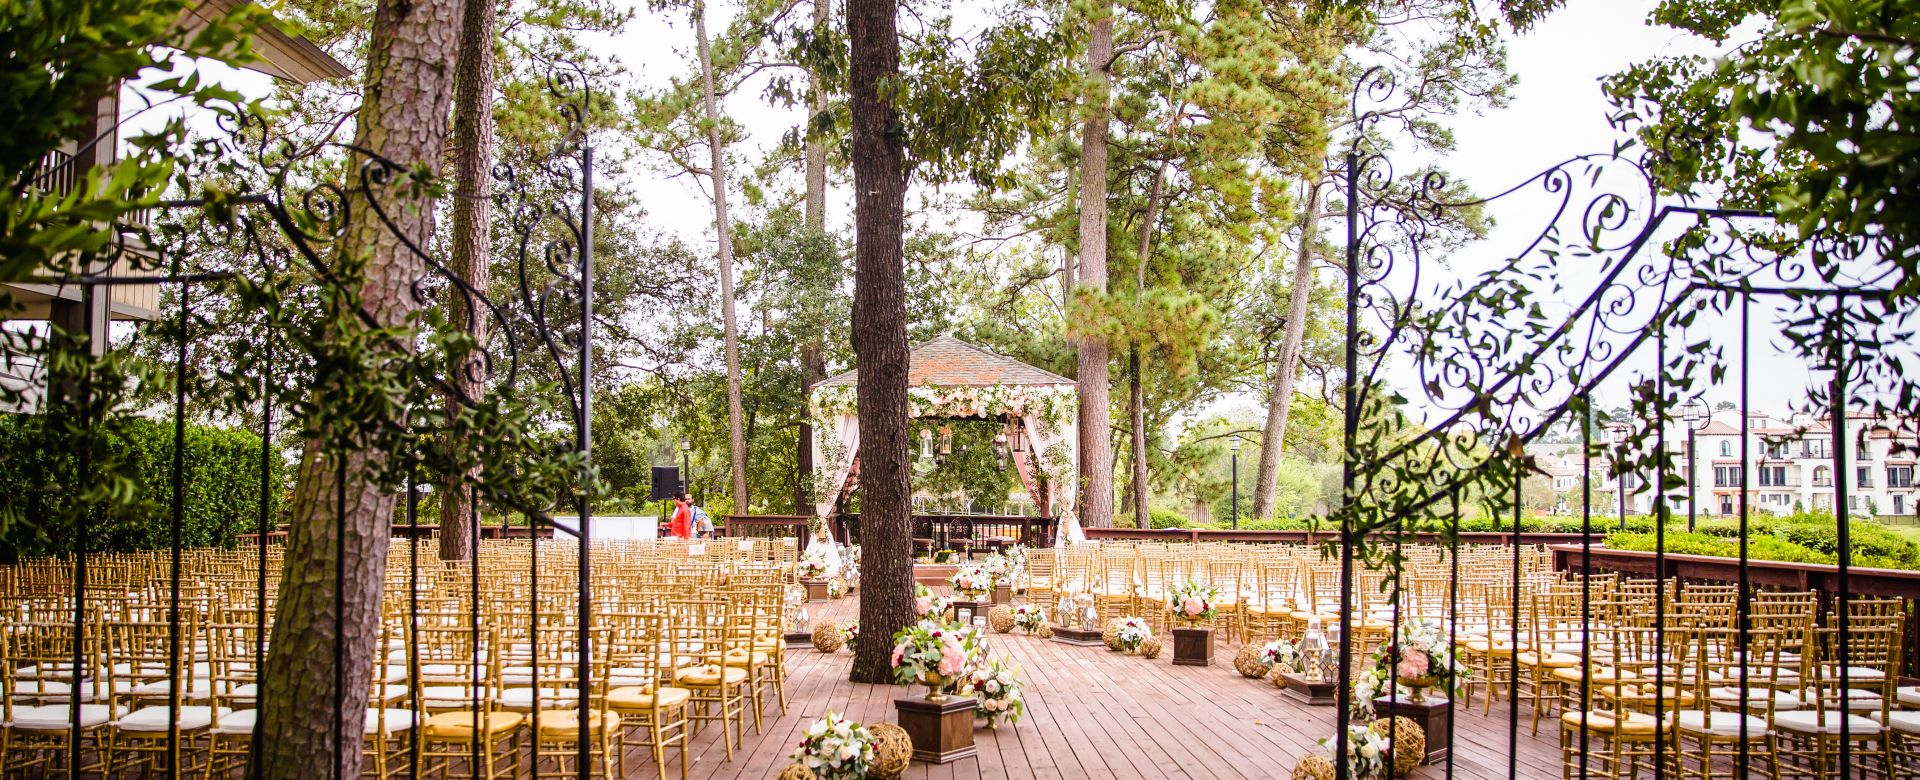 A large deck with chairs and an aisle decorated for a wedding ceremony.